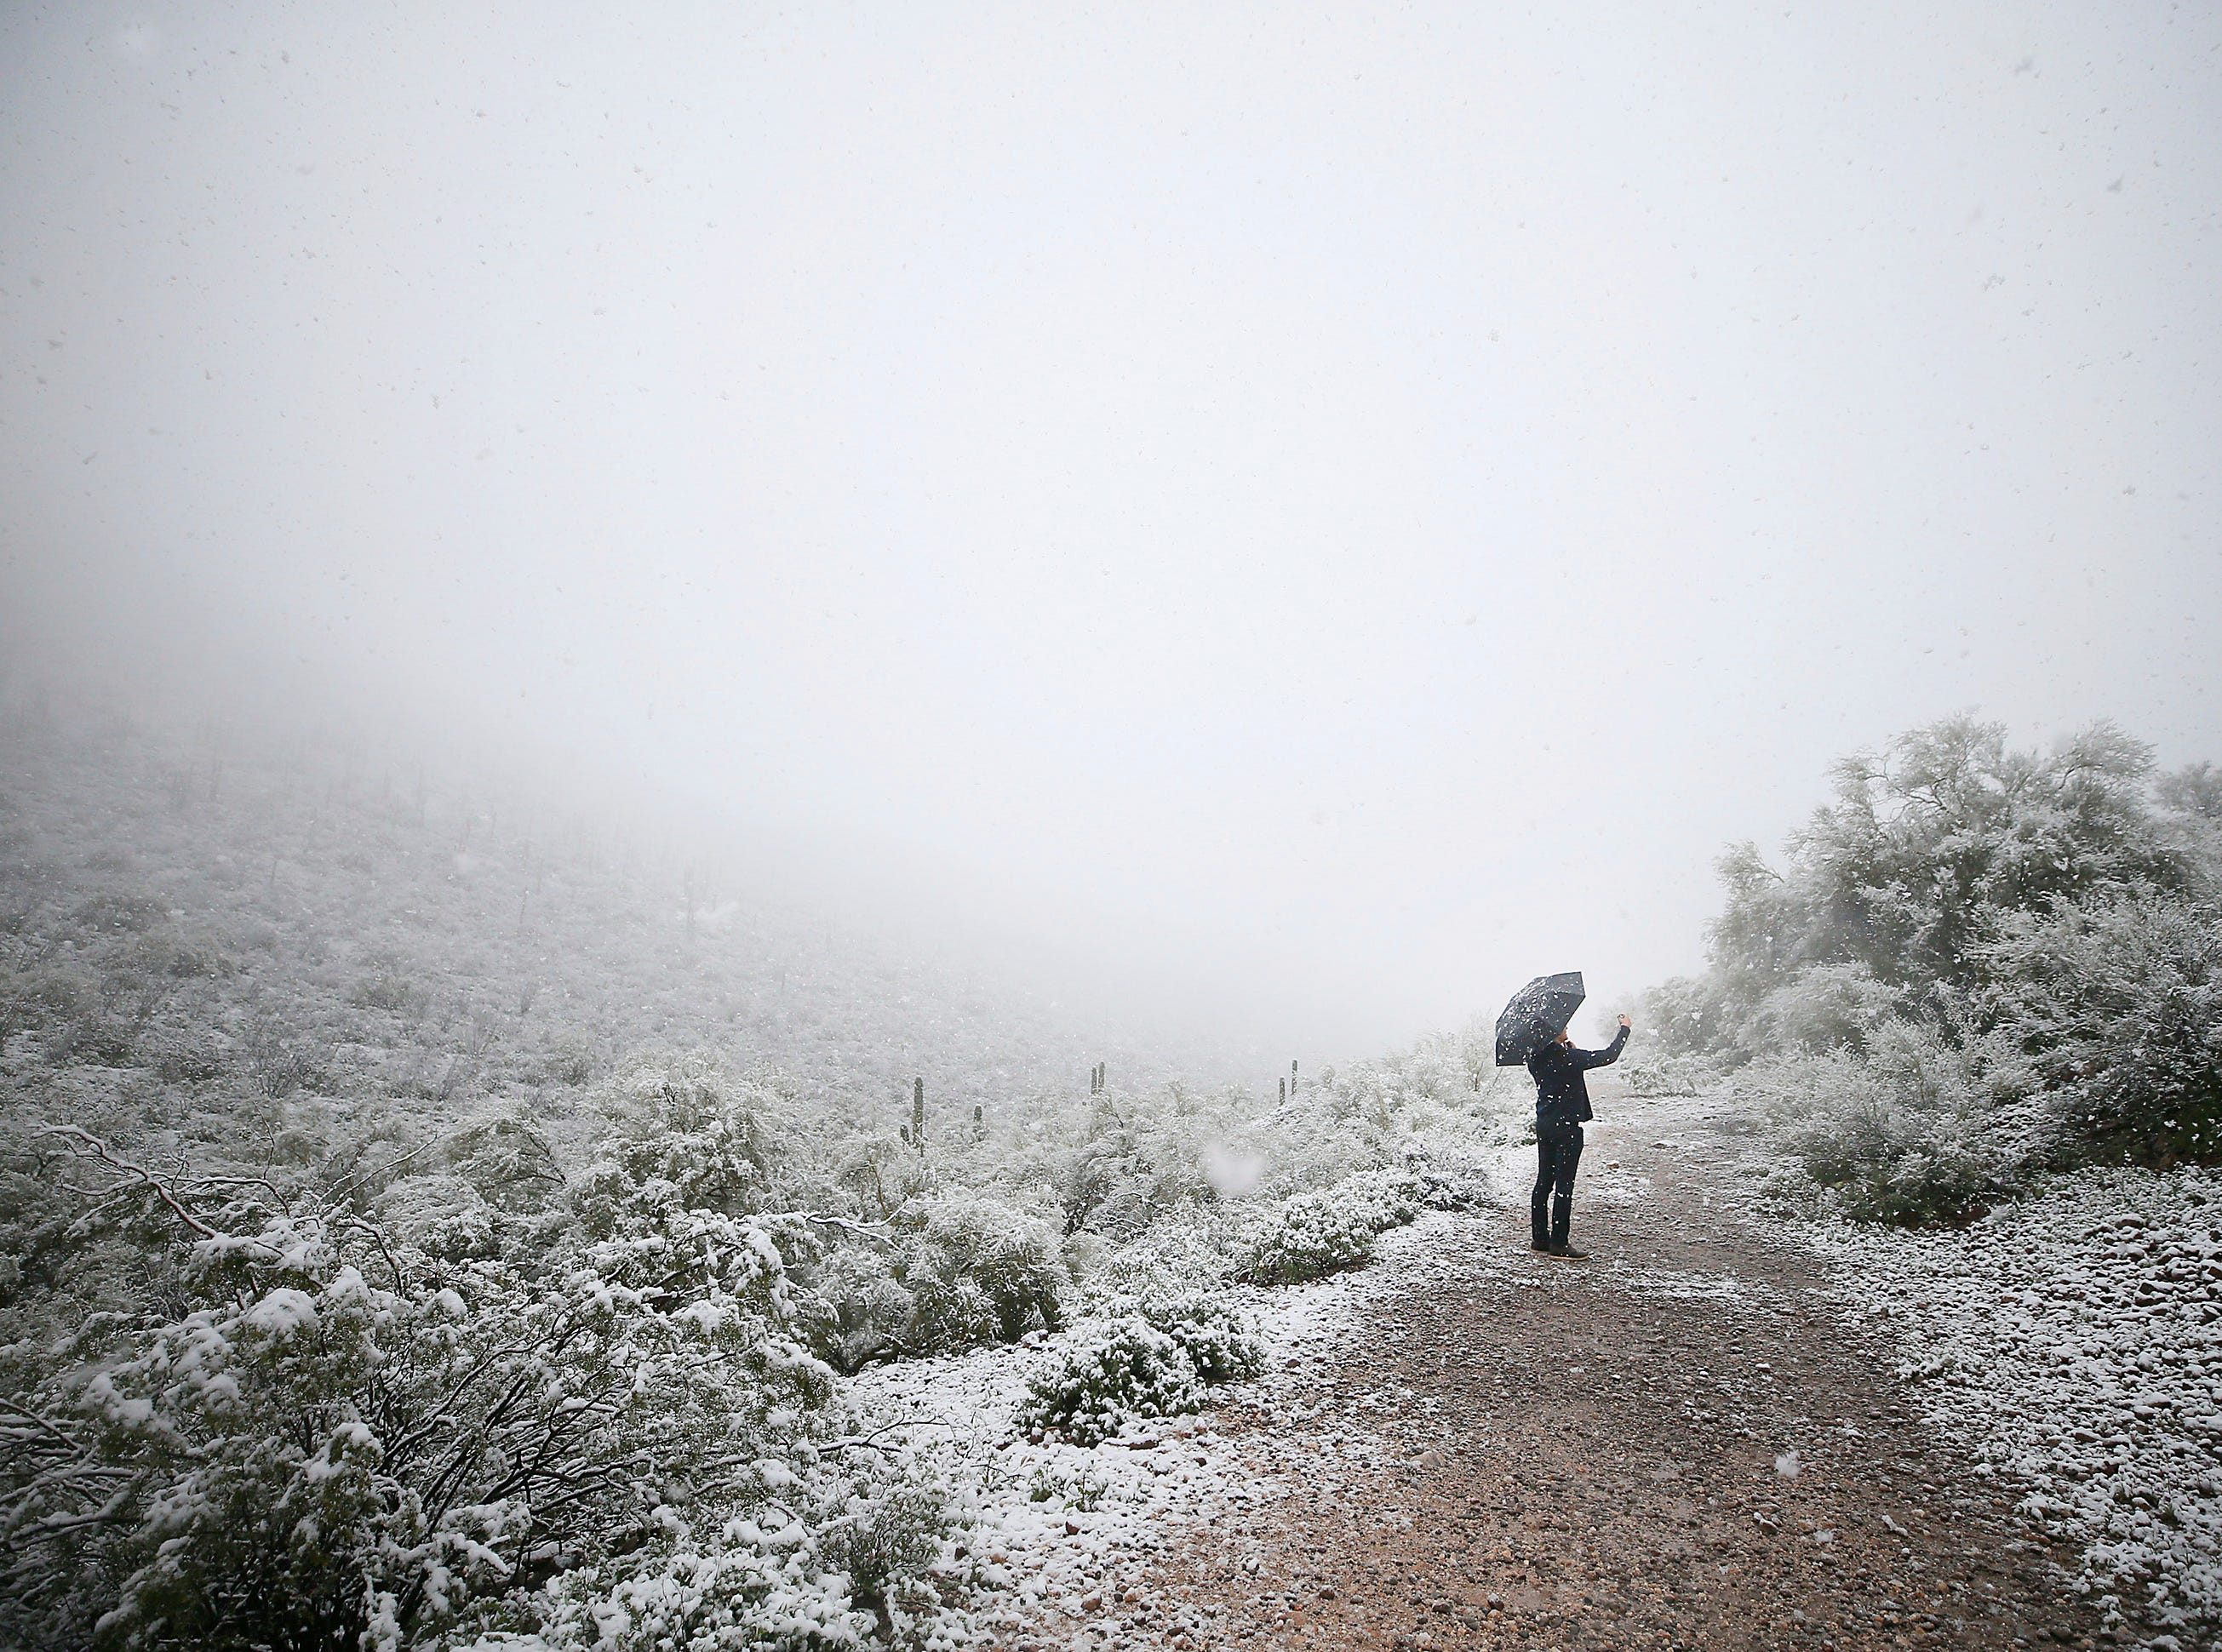 A man takes a photo of the desert landscape near Sentinel Peak covered in snow on Friday, Feb. 22, 2019, in Tucson, Ariz.  Snow fell and accumulated in central and downtown Tucson on Friday, surprising many in a city where snow is extremely rare.